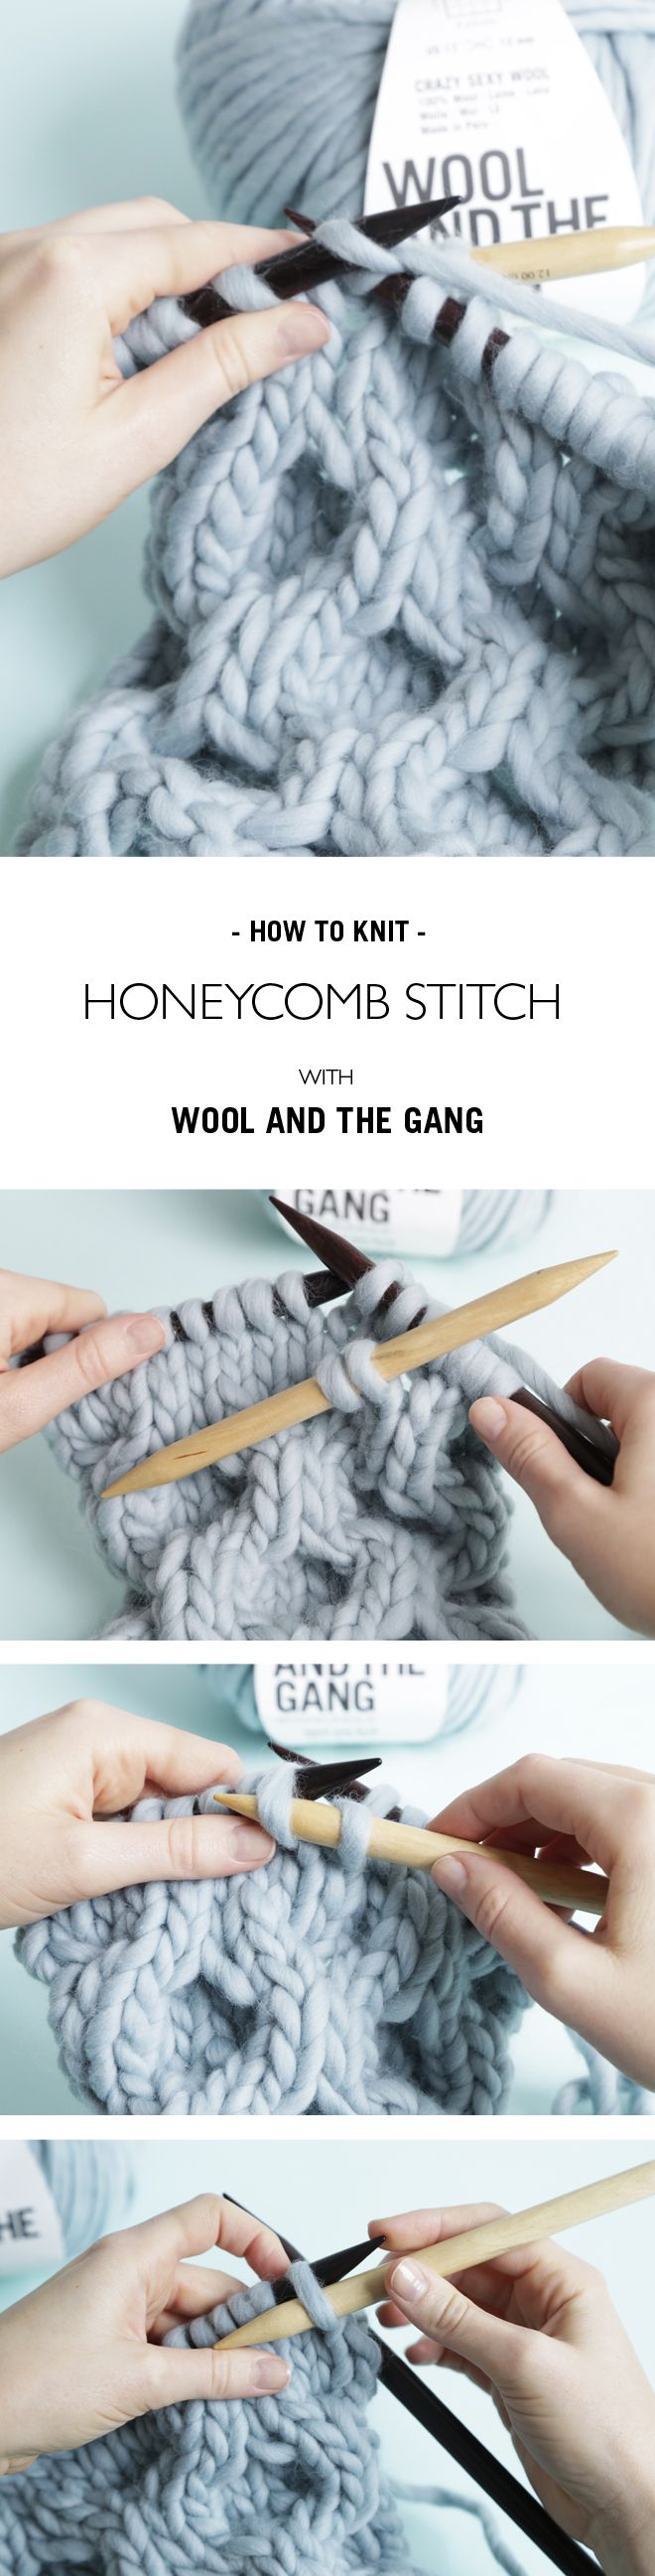 HOW TO KNIT HONEYCOMB STITCH | @woolandthegang